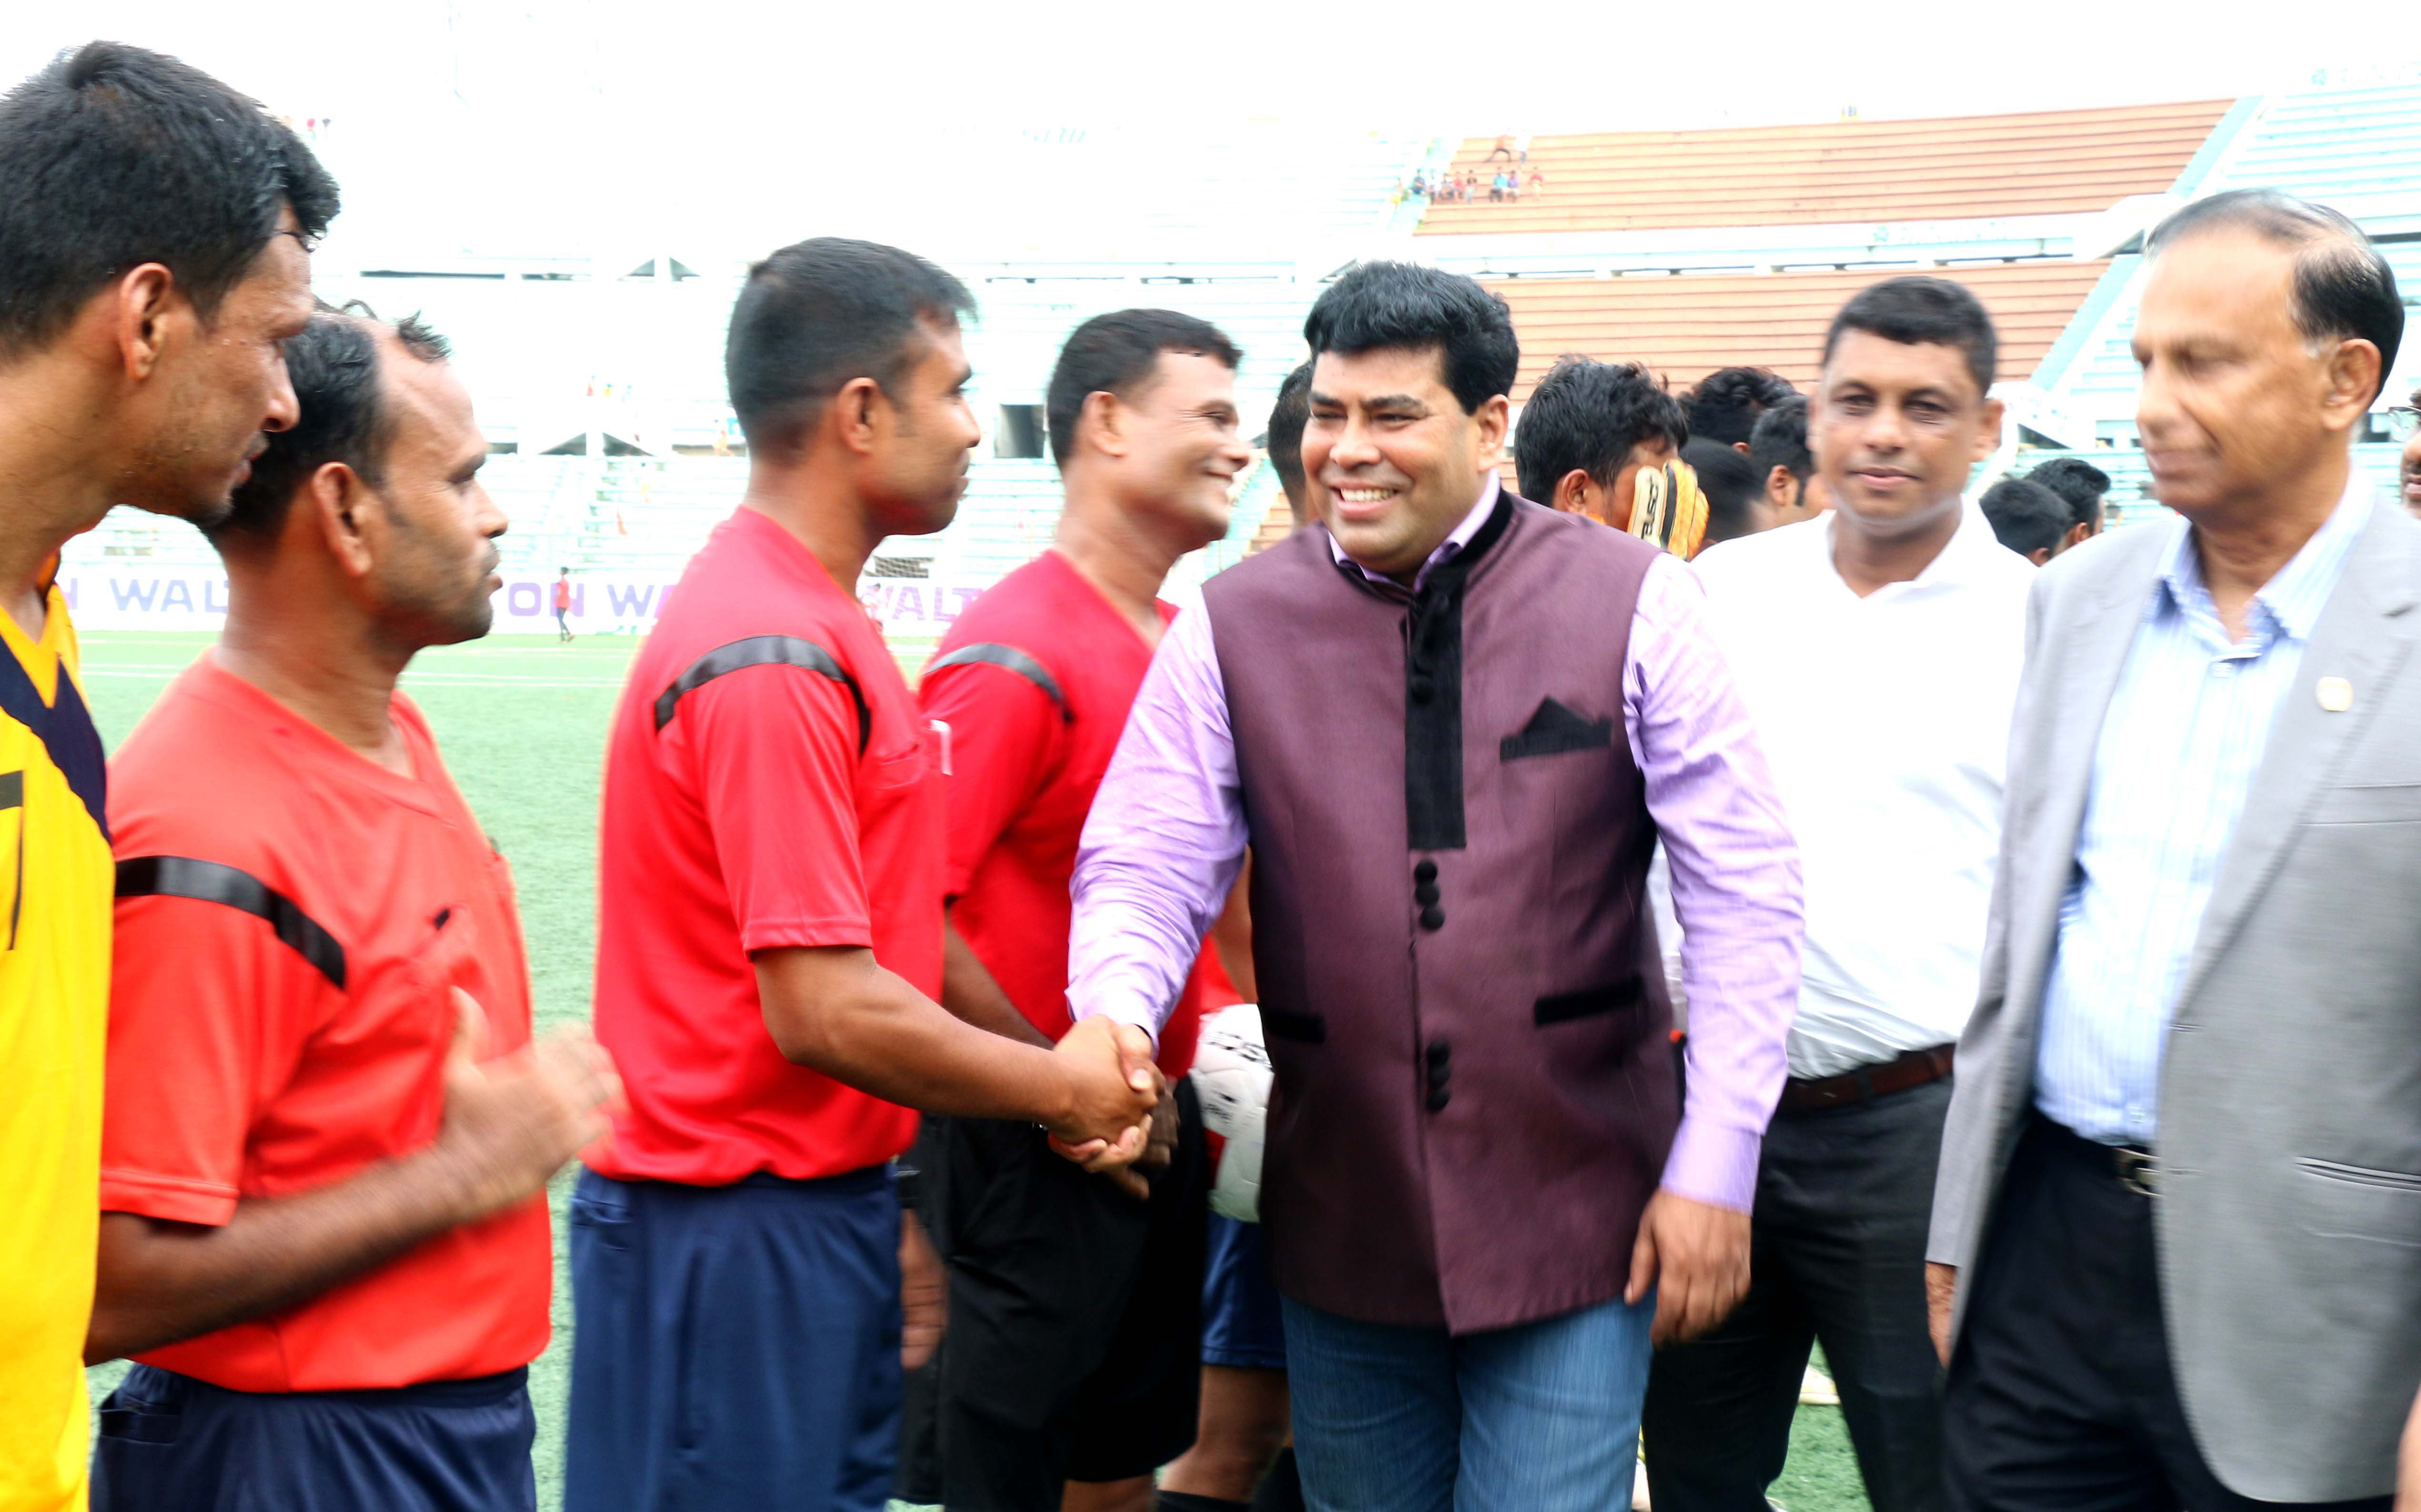 Operative Director (Head of Sports & Welfare Department) of Walton Group FM Iqbal Bin Anwar Dawn being introduced with the players of the participating teams of the Walton 1st Dhaka Metropolis Football Tournament as the chief guest at the Bir Shreshtha Shaheed Sepoy Mohammad Mostafa Kamal Stadium in the city's Kamalapur on Thursday.